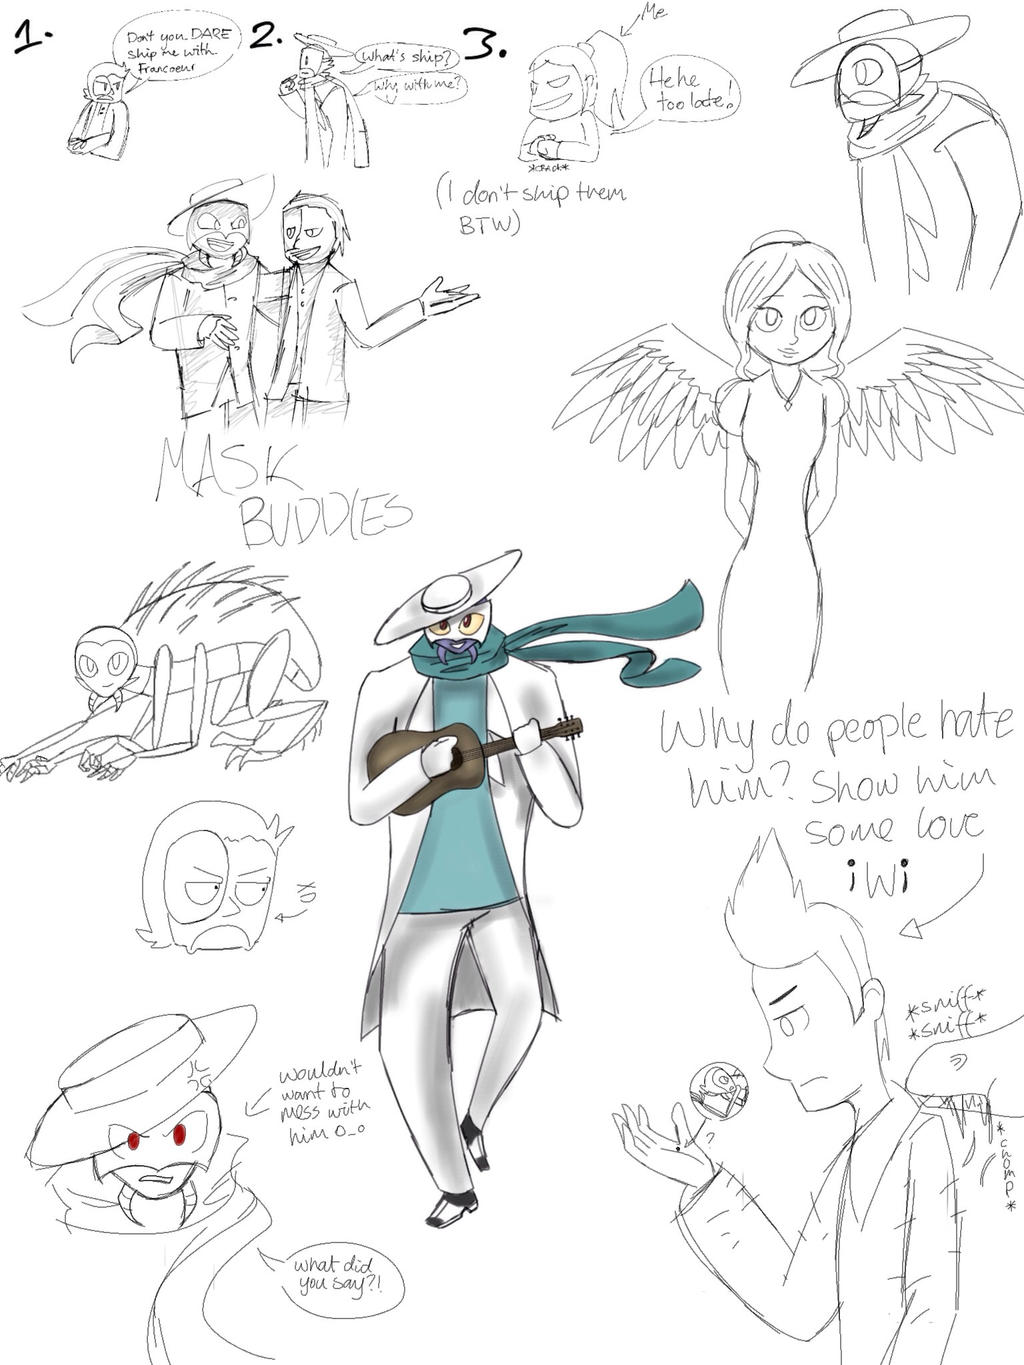 AMiP and OotO Sketches by Gameaddict1234